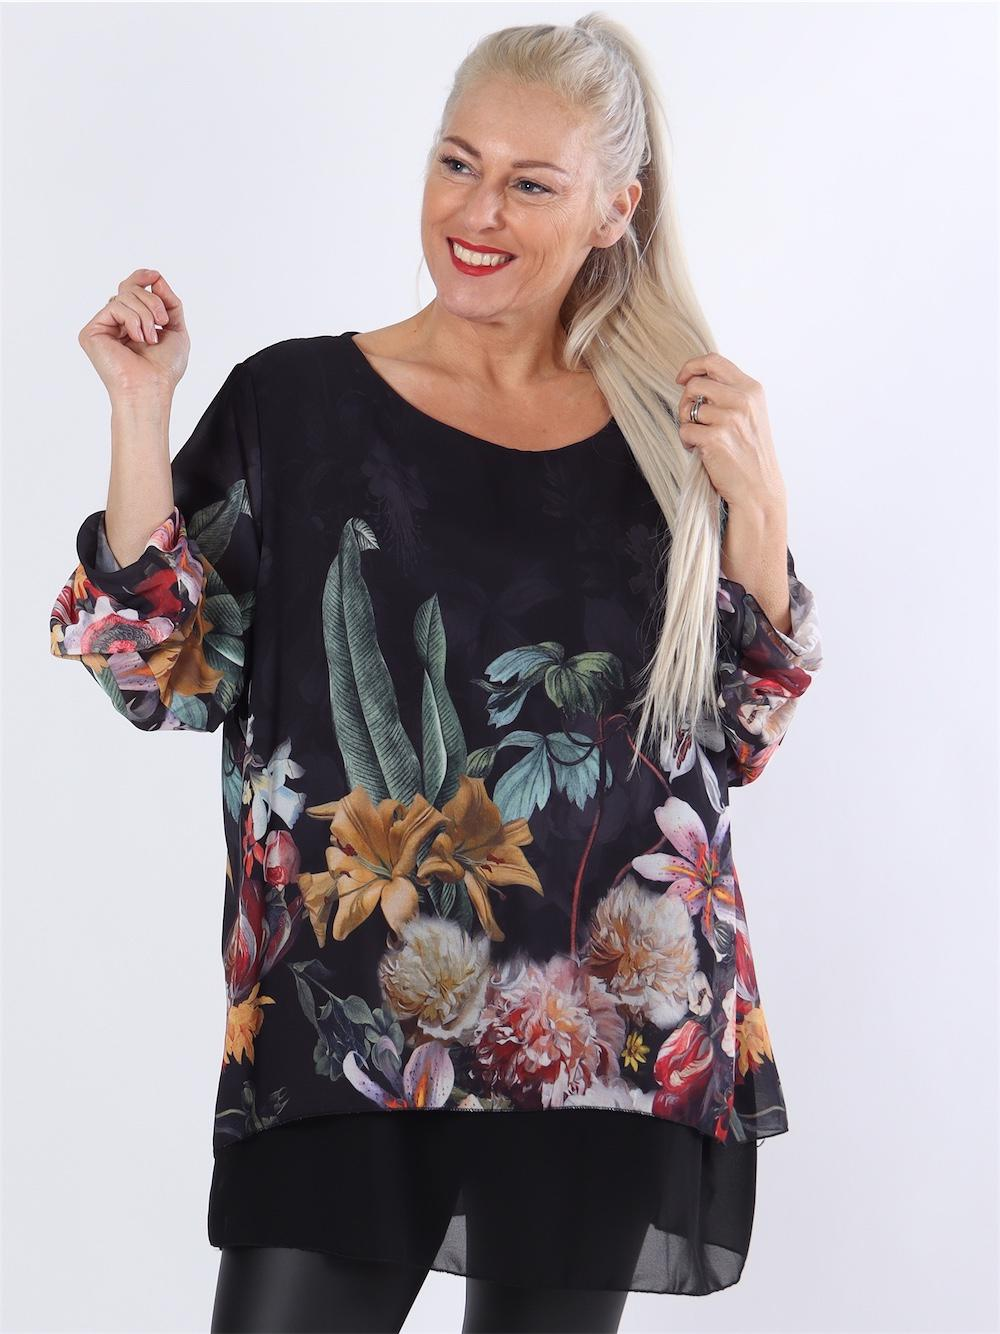 Gro - Sort tunika i chiffon med blomsterprint